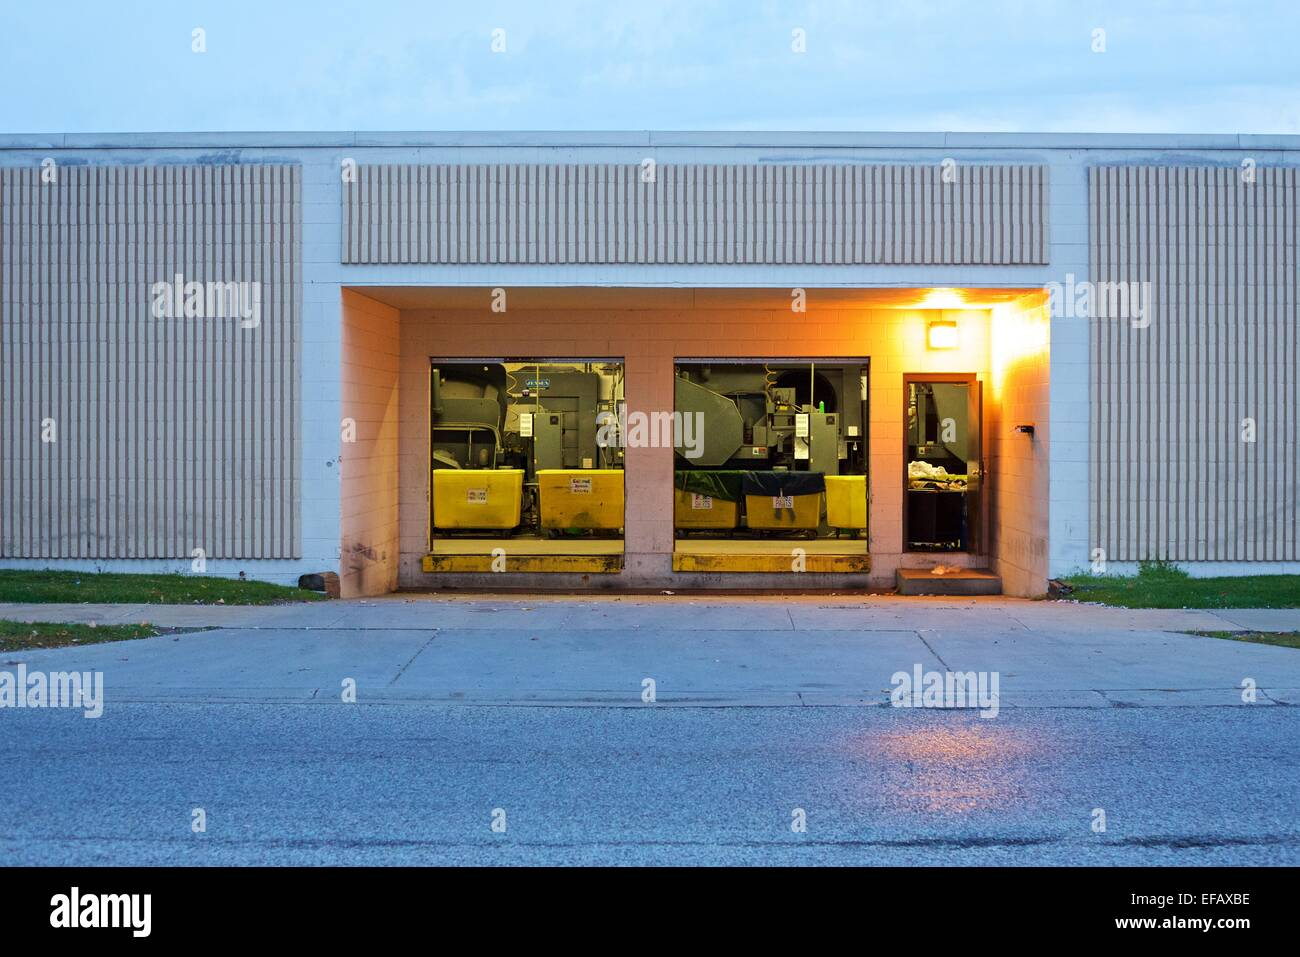 Open garage doors at an industrial laundromat loading dock - Stock Image